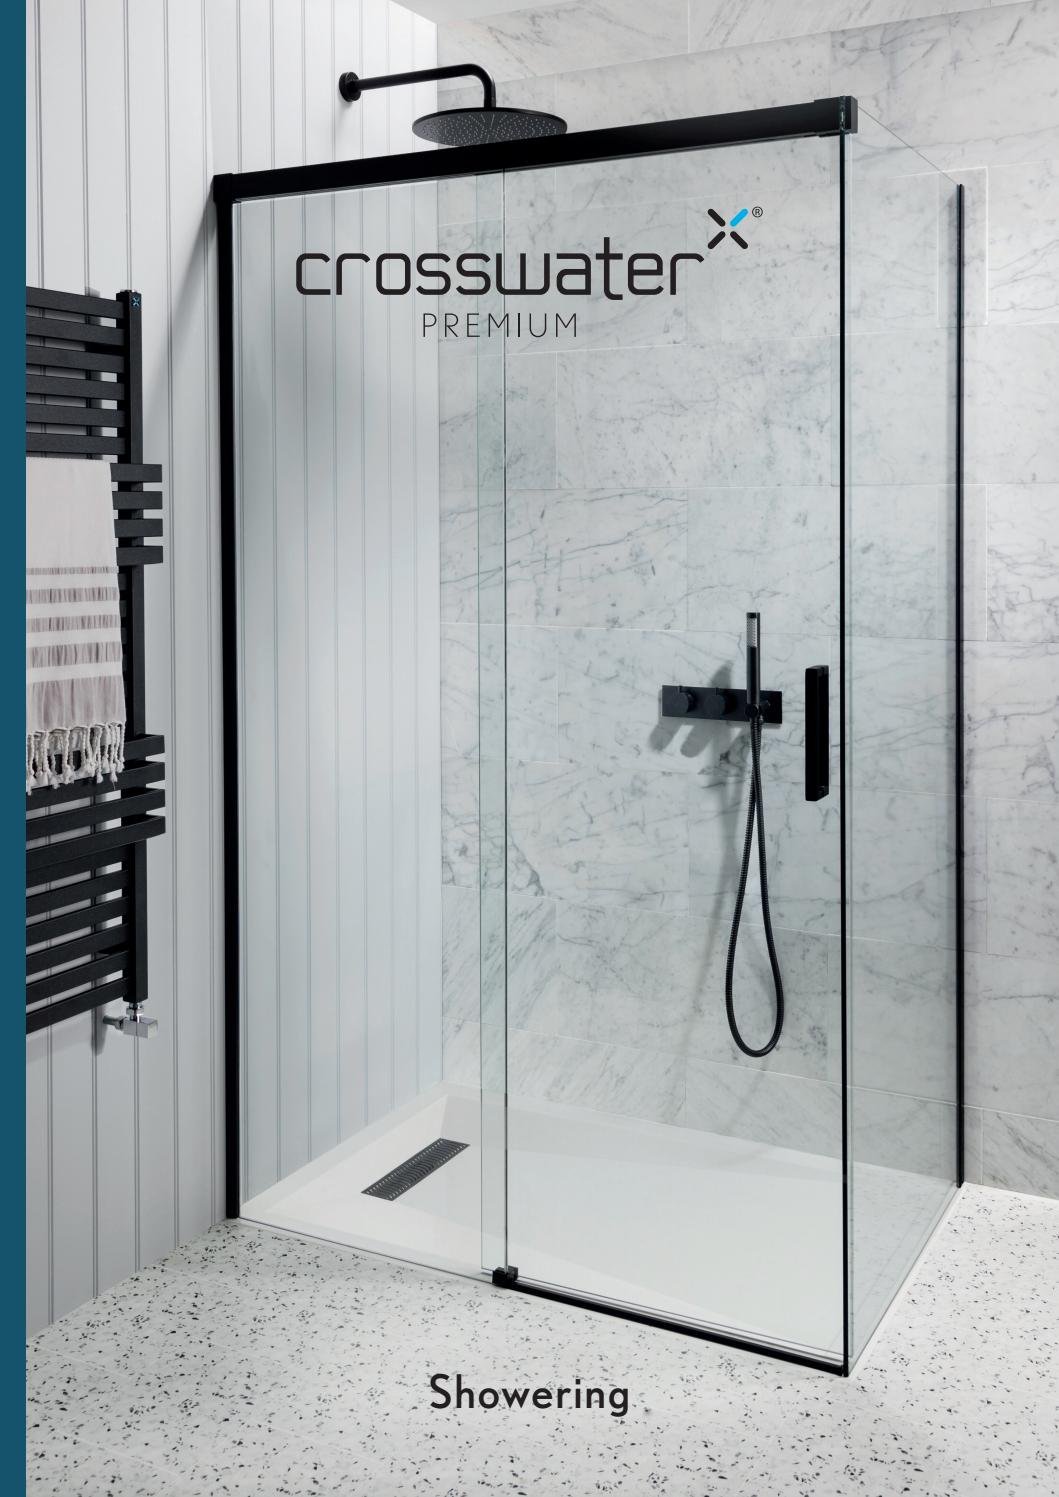 Wetroom Shower Glass Support Arm Adjustable from 690-1200mm  for 8-12mm Glass